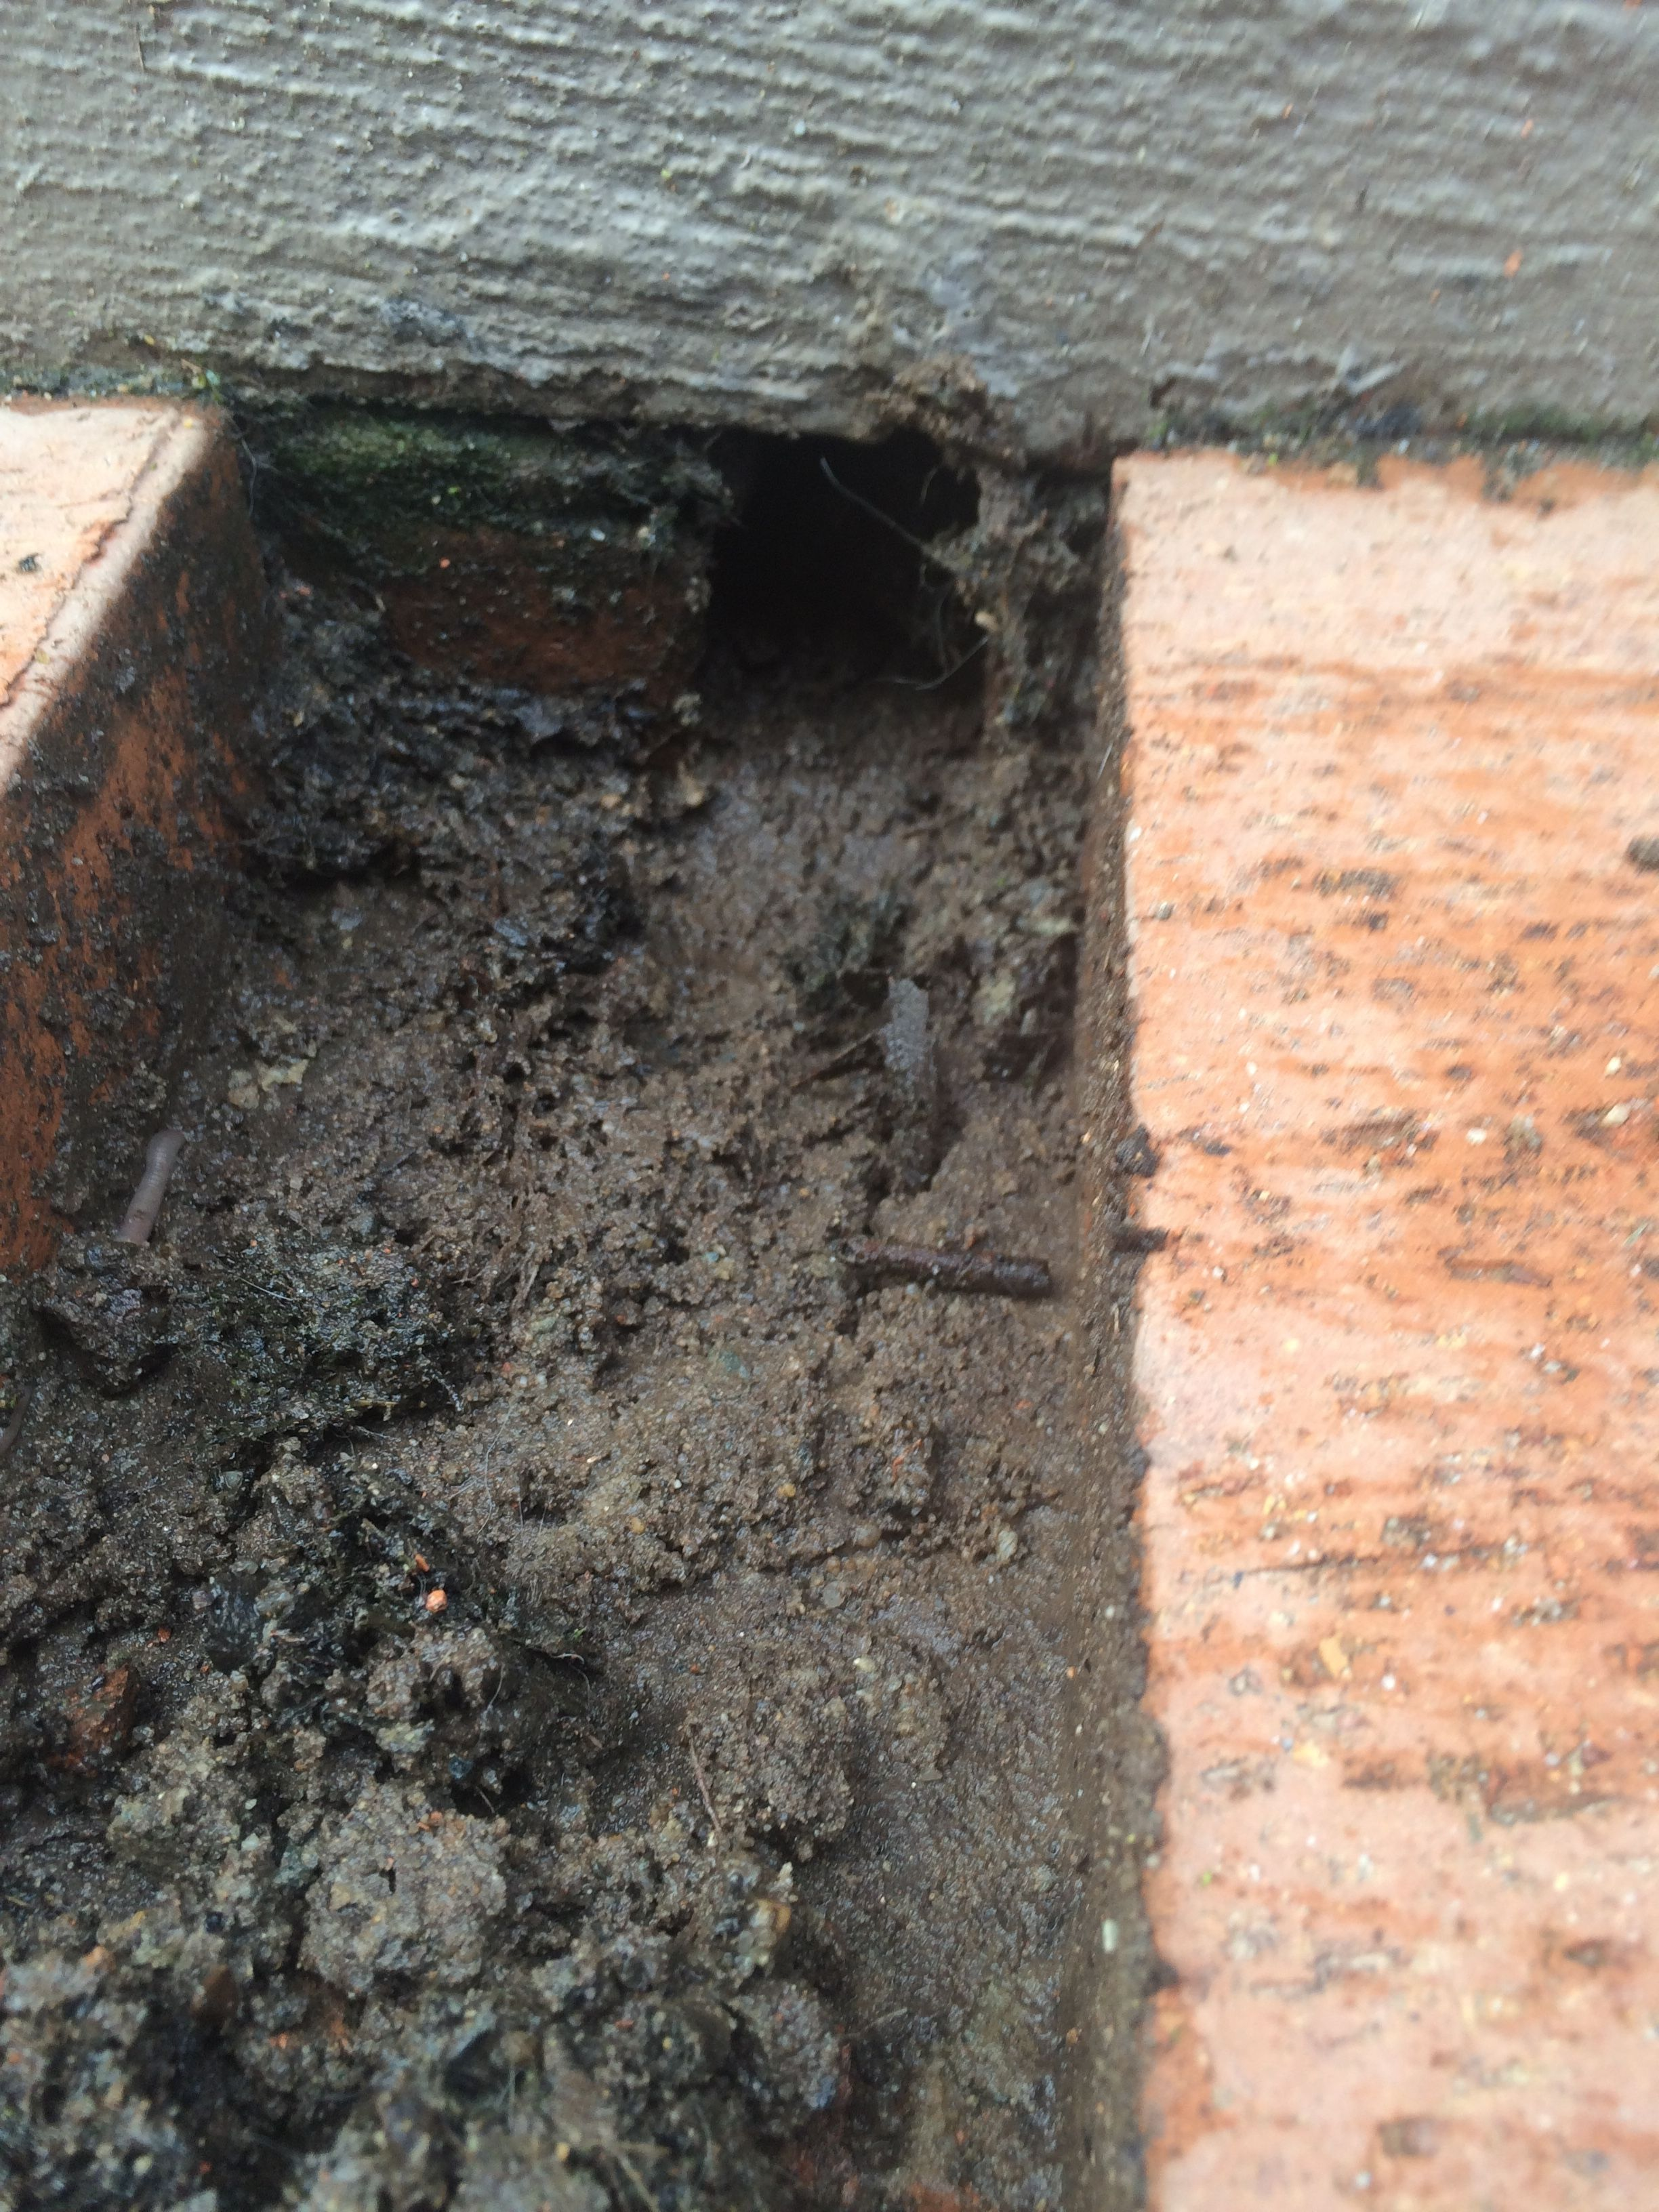 Weep holes in retaining wall are below the paver level causing the